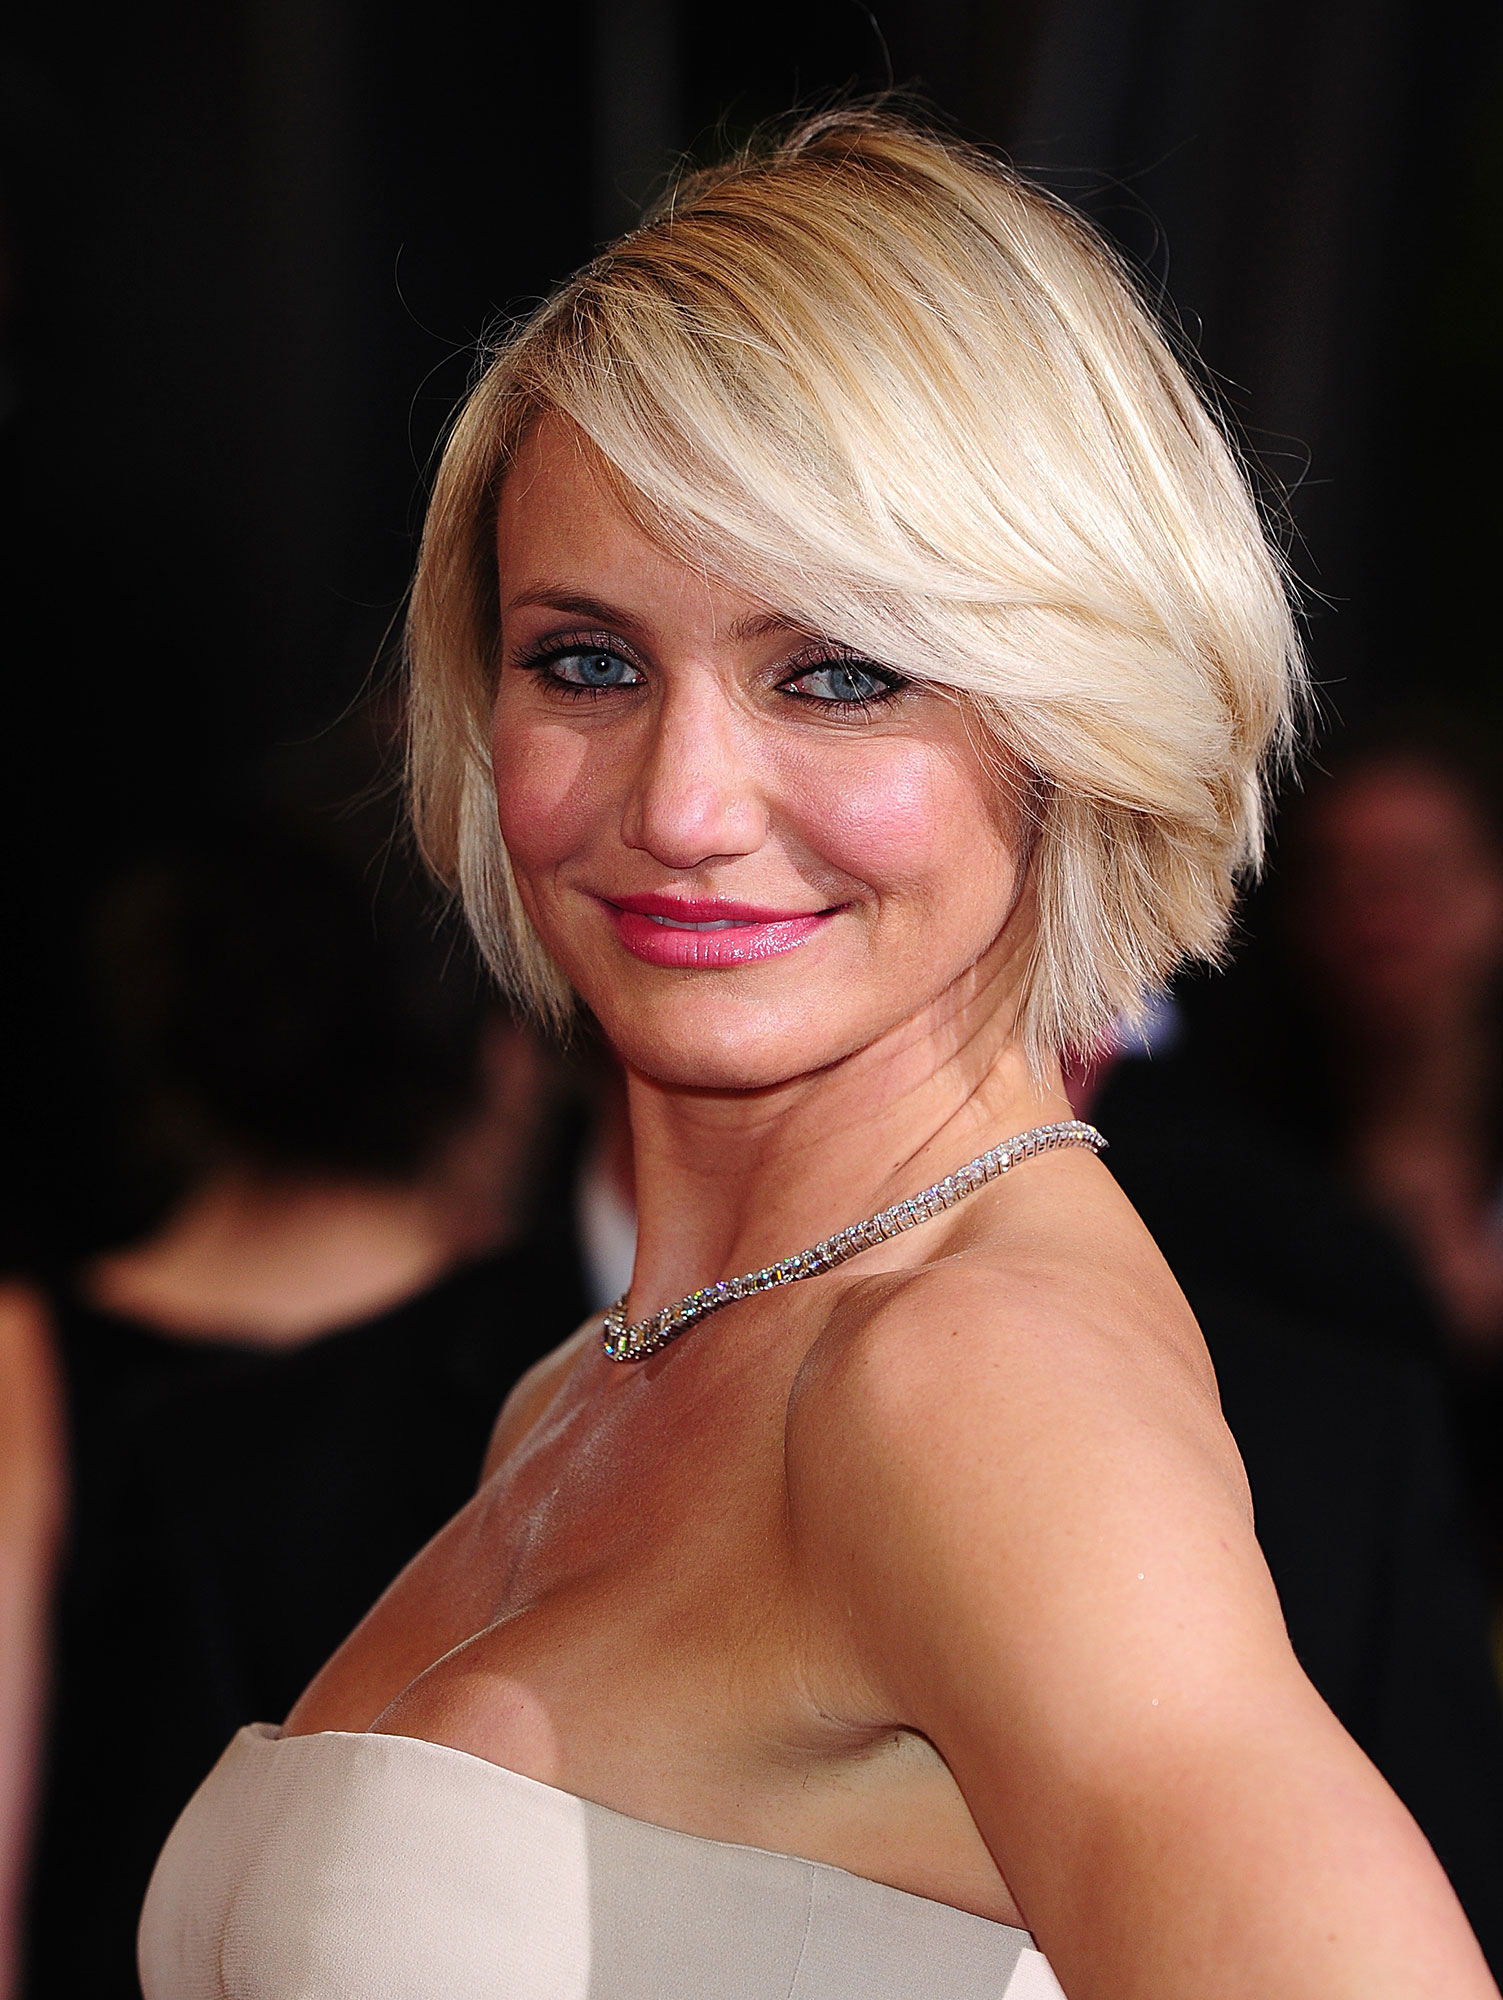 Cameron Diaz - Stars Who Have Never Won Oscars - The Vanilla Sky star retired from acting before ever having taken home an Academy Award (or a nomination, for that matter).